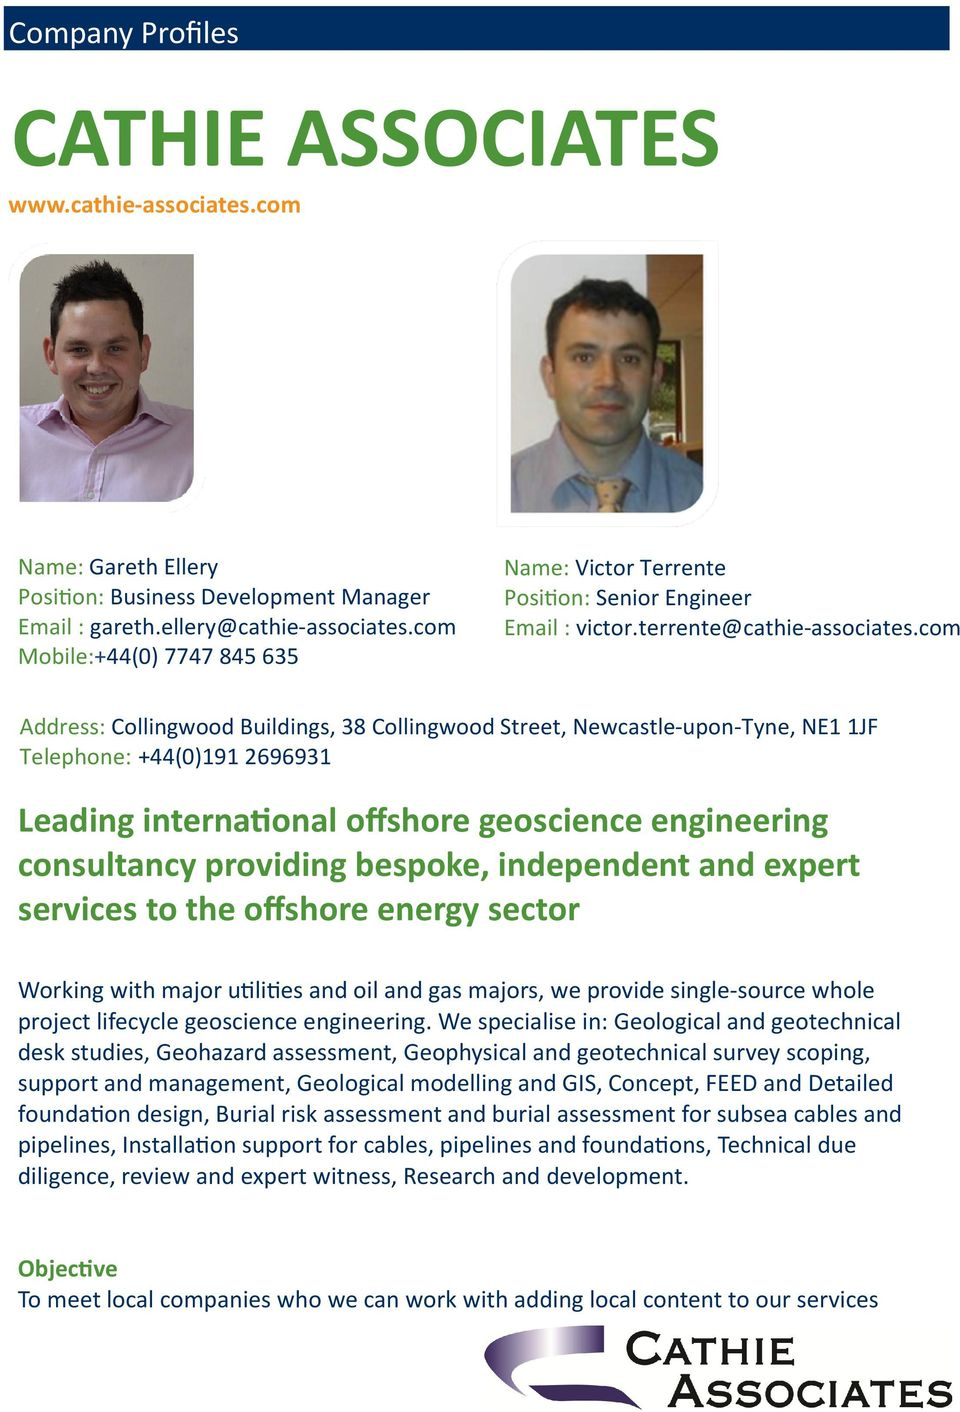 com Address: Collingwood Buildings, 38 Collingwood Street, Newcastle-upon-Tyne, NE1 1JF Telephone: +44(0)191 2696931 Leading interna onal offshore geoscience engineering consultancy providing